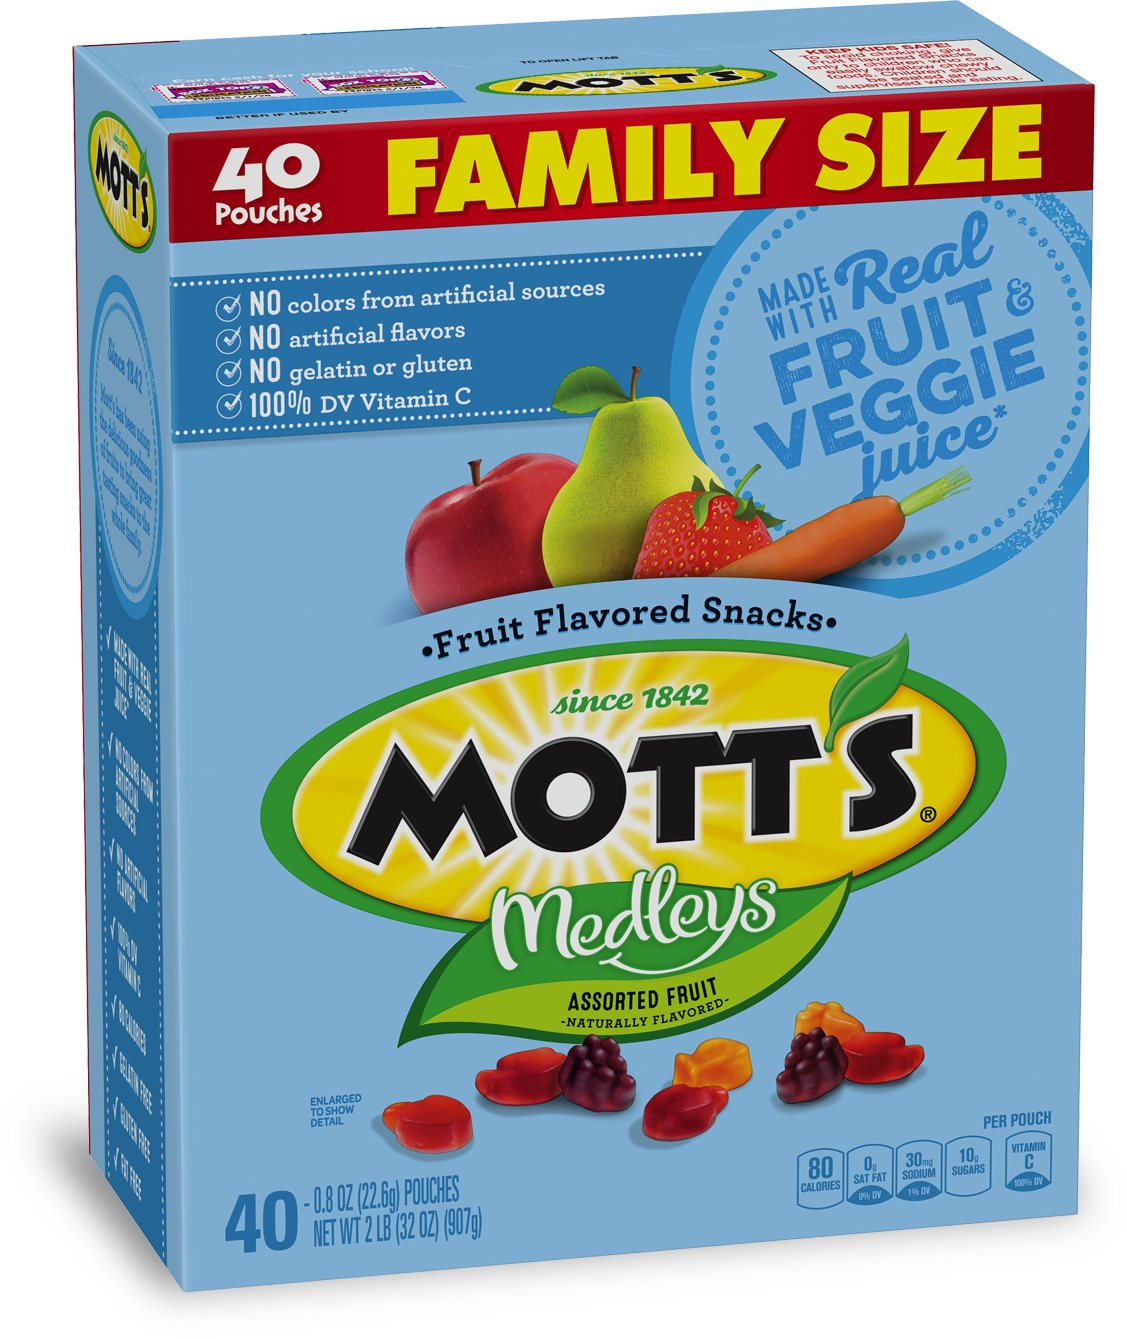 Mott's Medleys Fruit Snacks, Gluten Free, Family Size, 40 Pouches, 0.8 oz